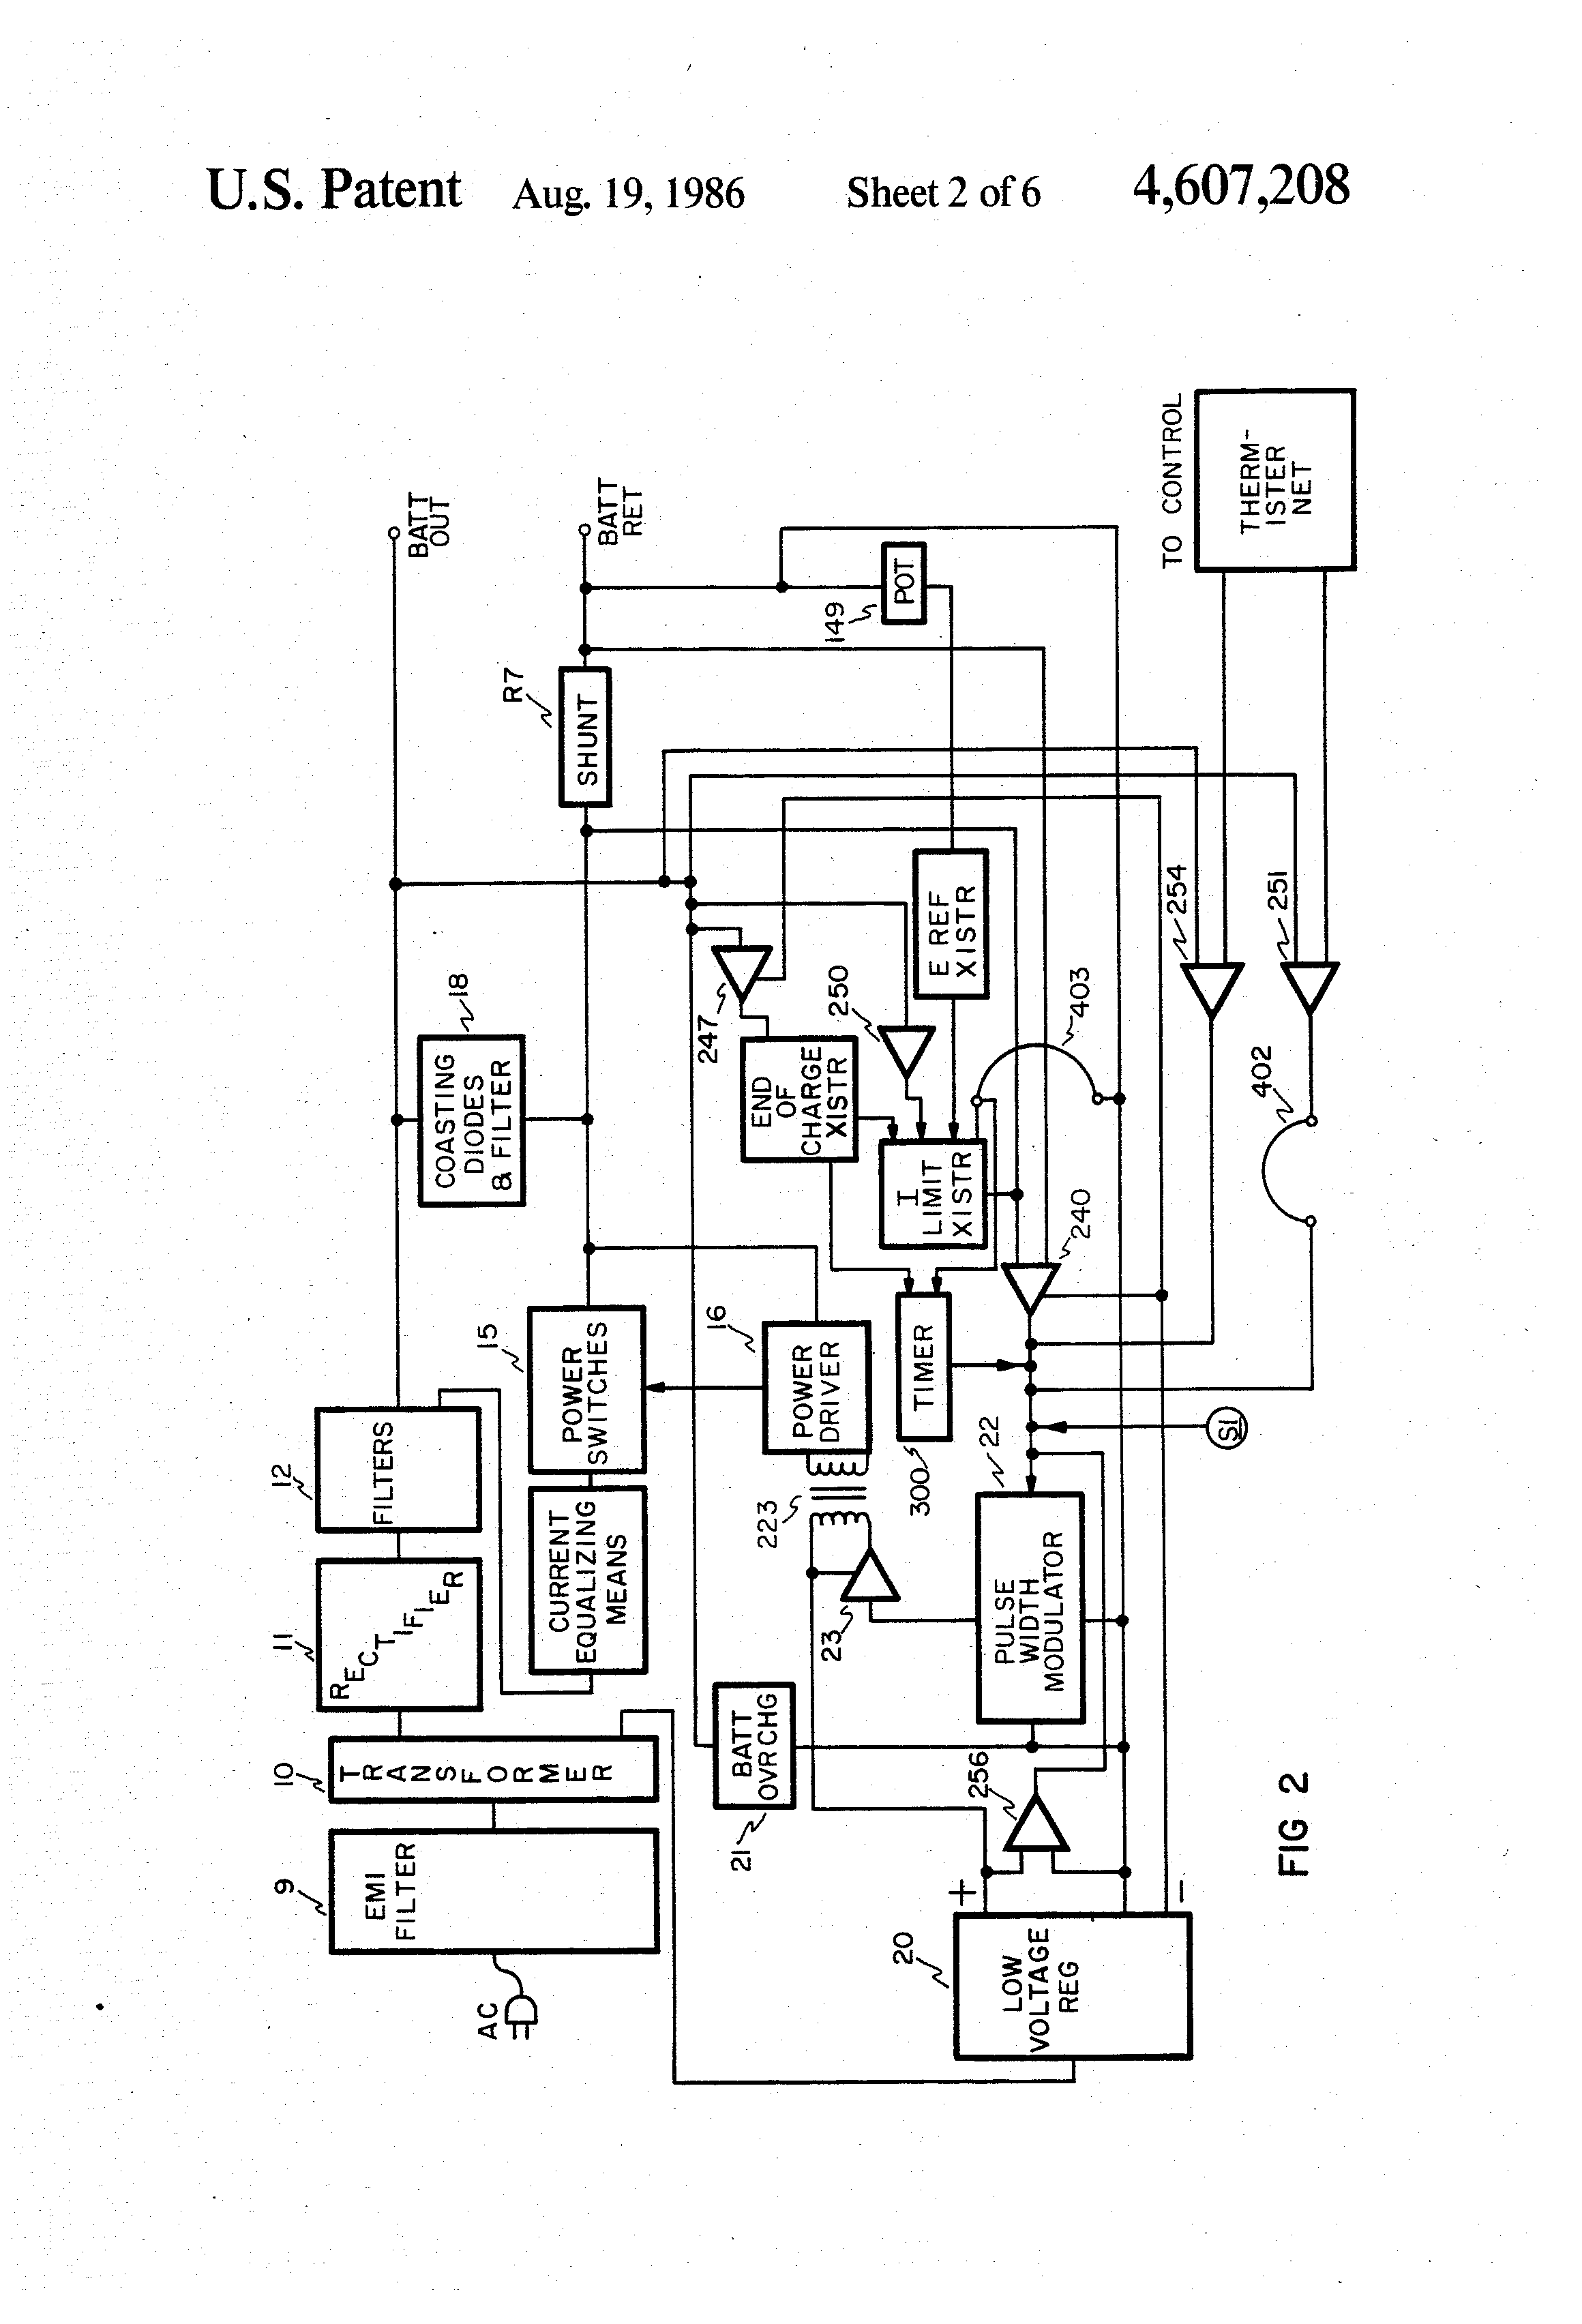 US4607208 2 wiring diagram for schumacher battery charger circuit and schumacher battery charger se-82-6 wiring diagram at n-0.co